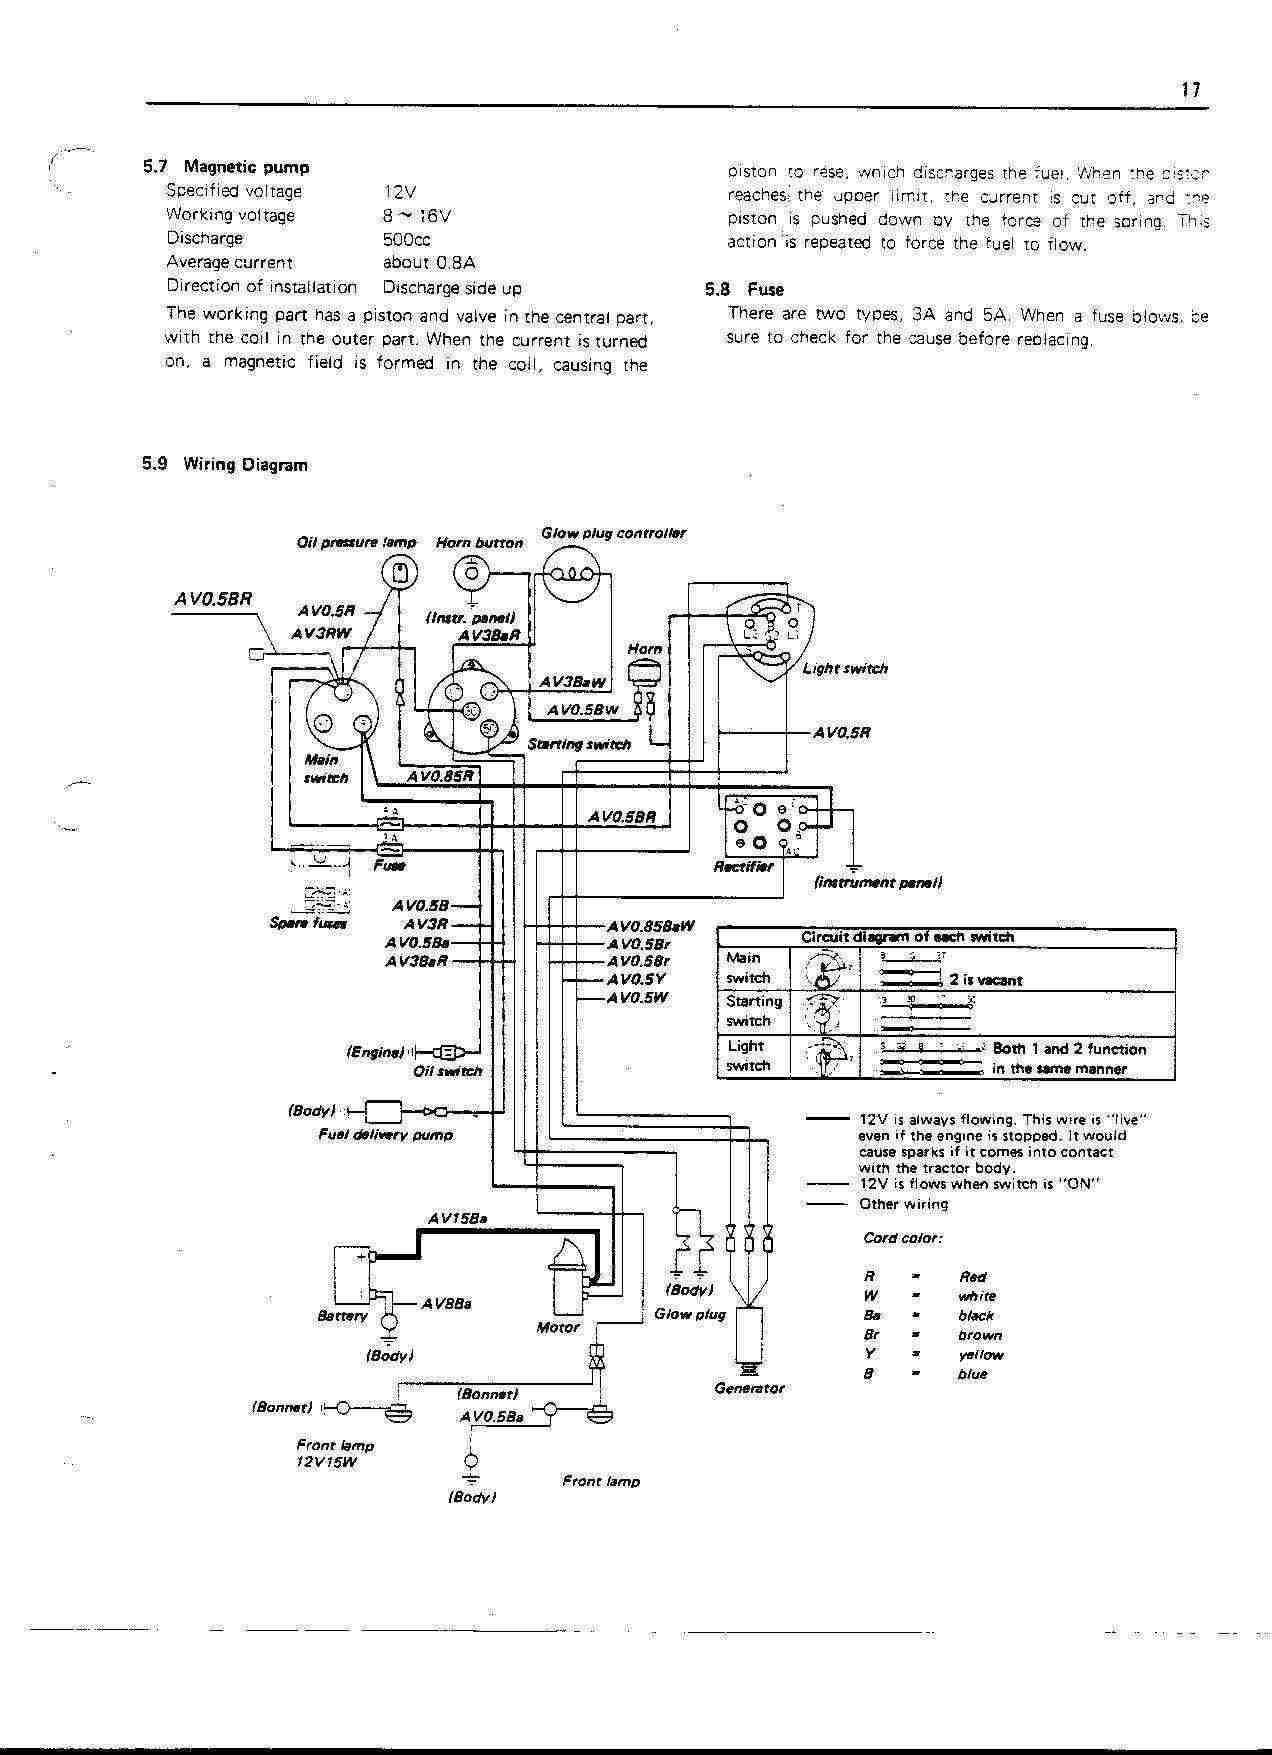 Kubota Bx22 Wiring Diagram Engine Diagram And Wiring Diagram